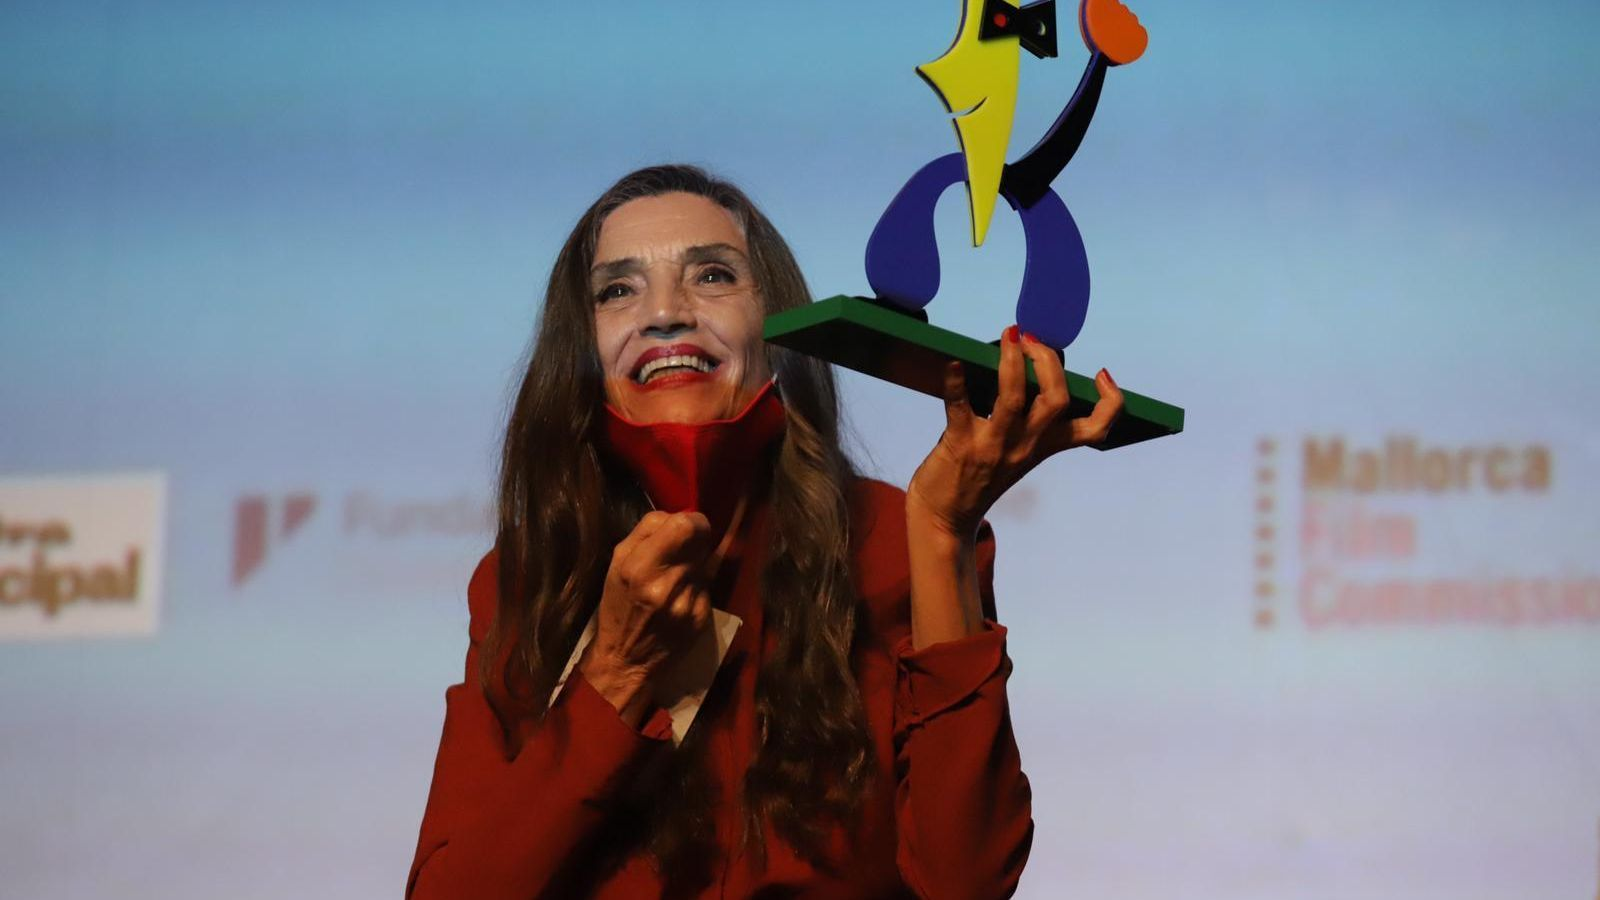 Ángela Molina amb el premi d'honor de l'Evolution Mallorca International Film Festival